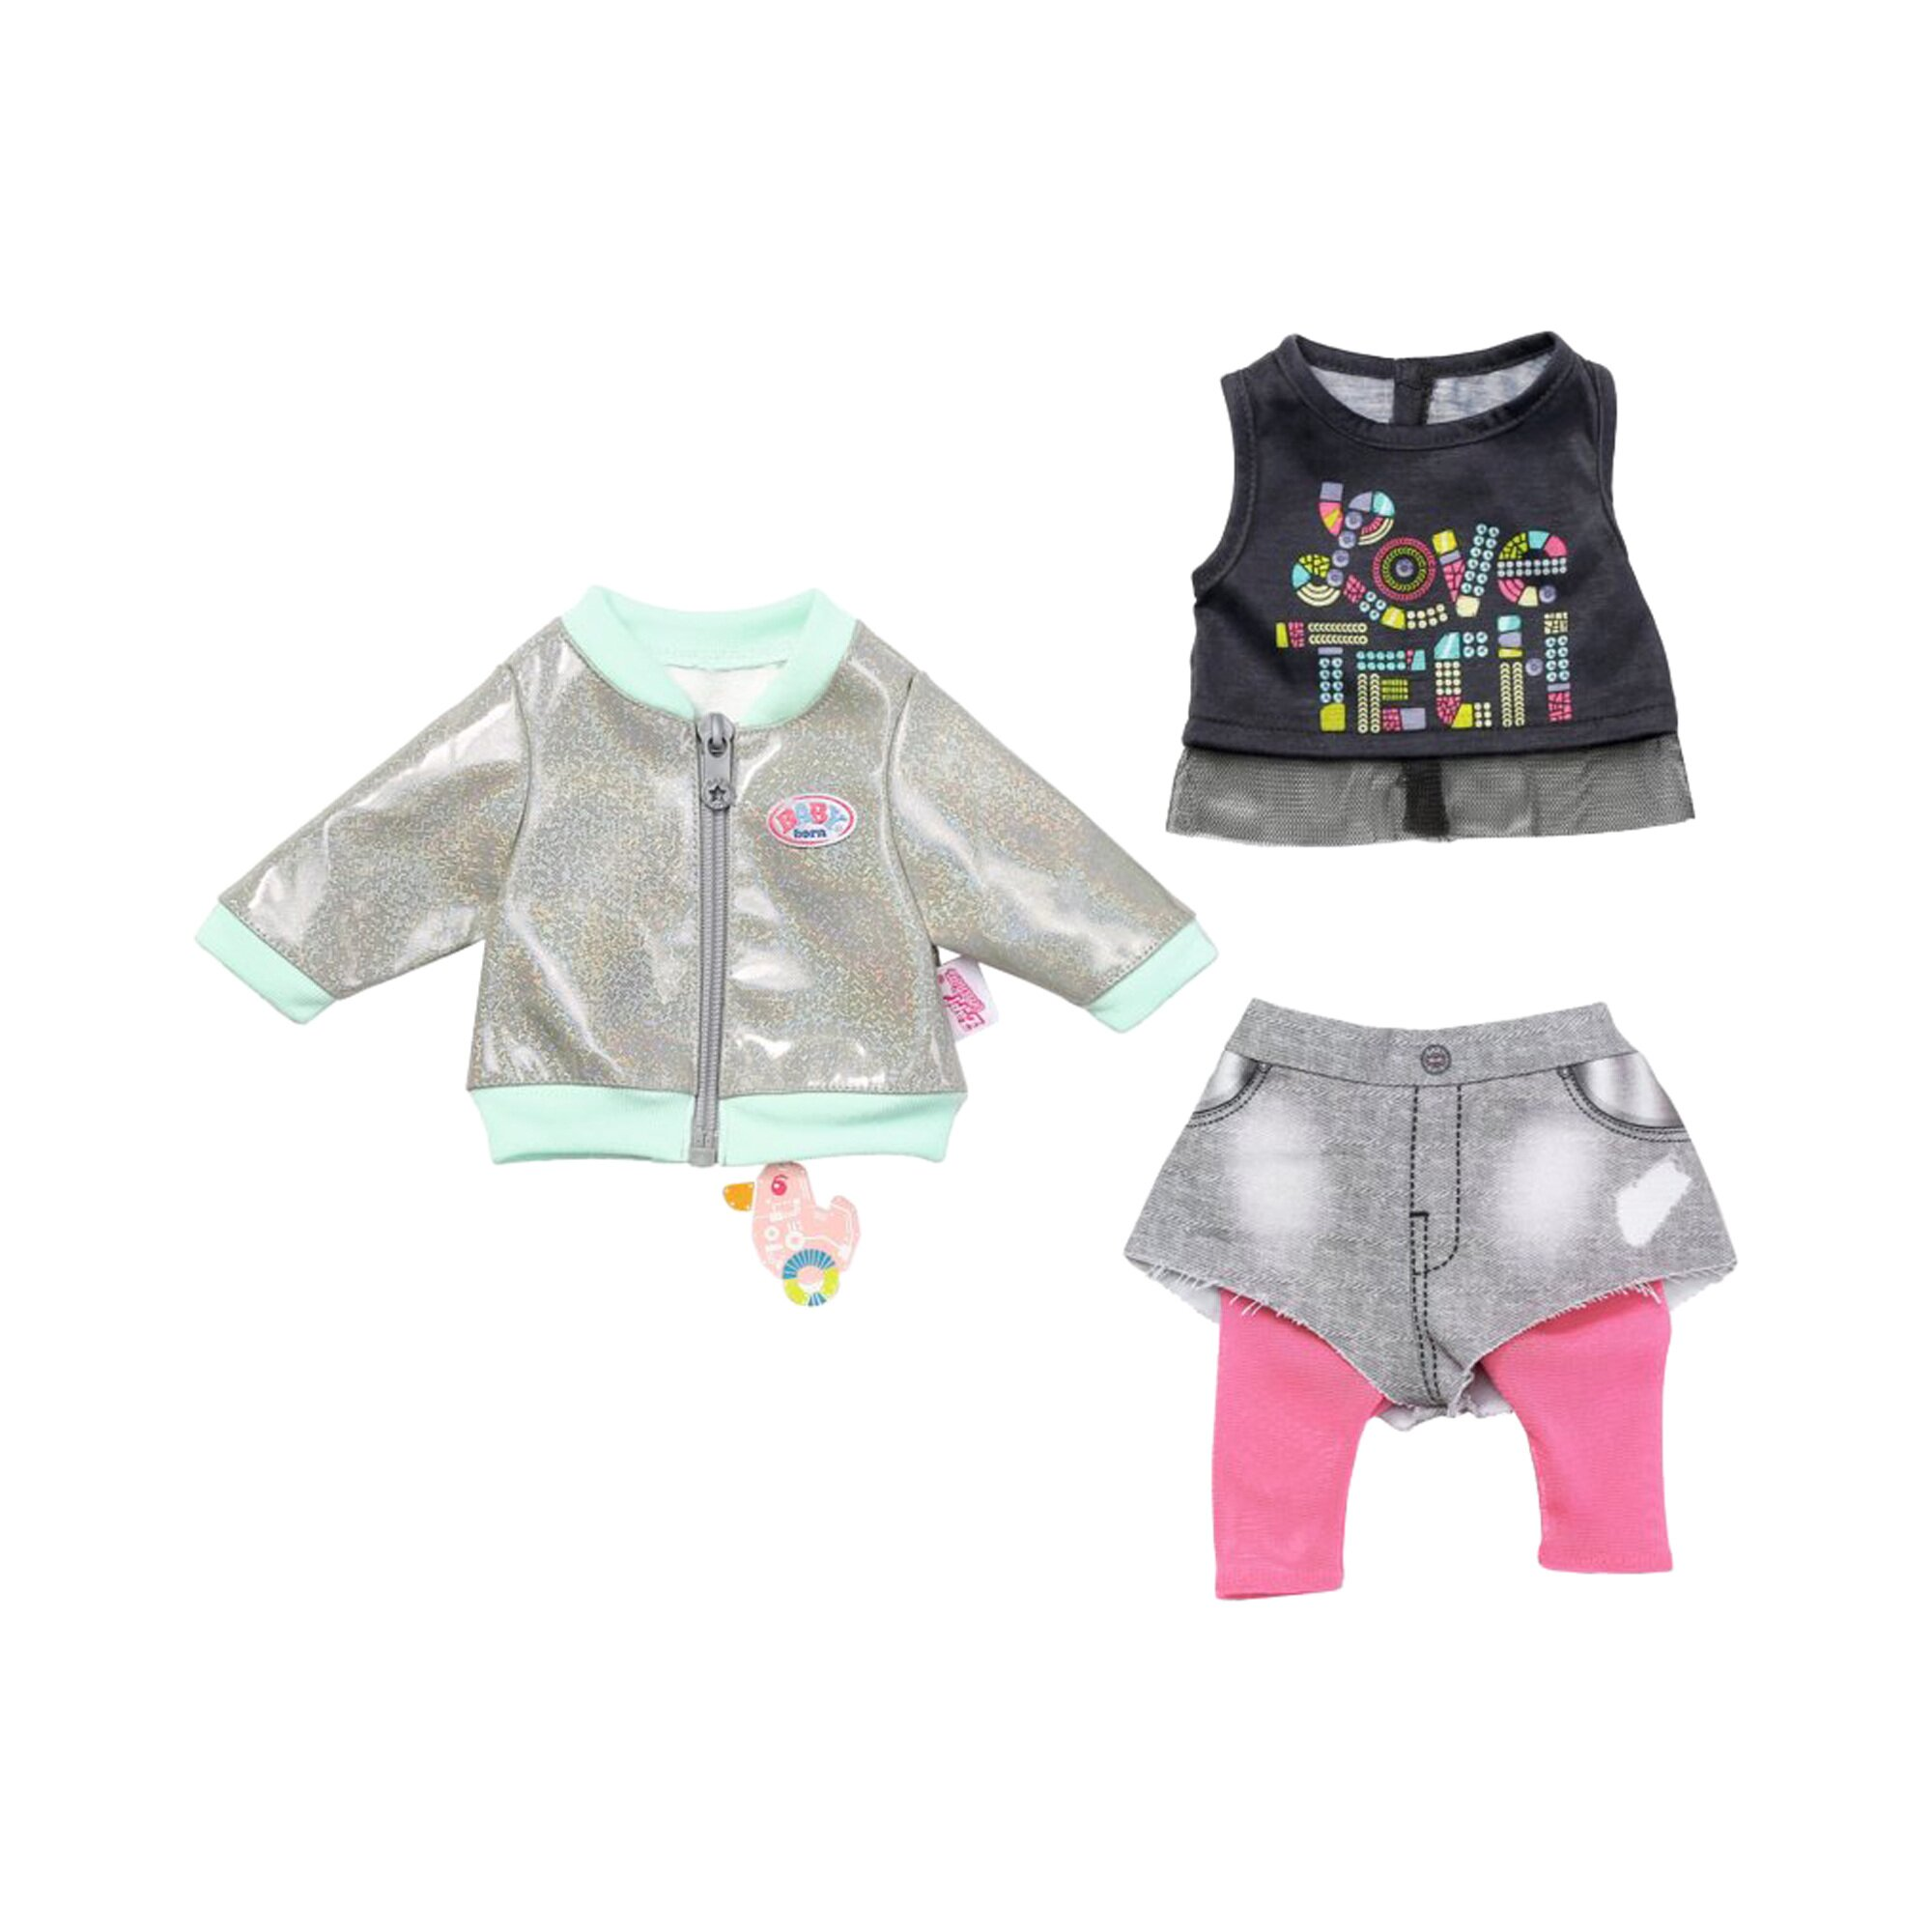 Baby Born BABY born Puppen Outfit Roboter Welt